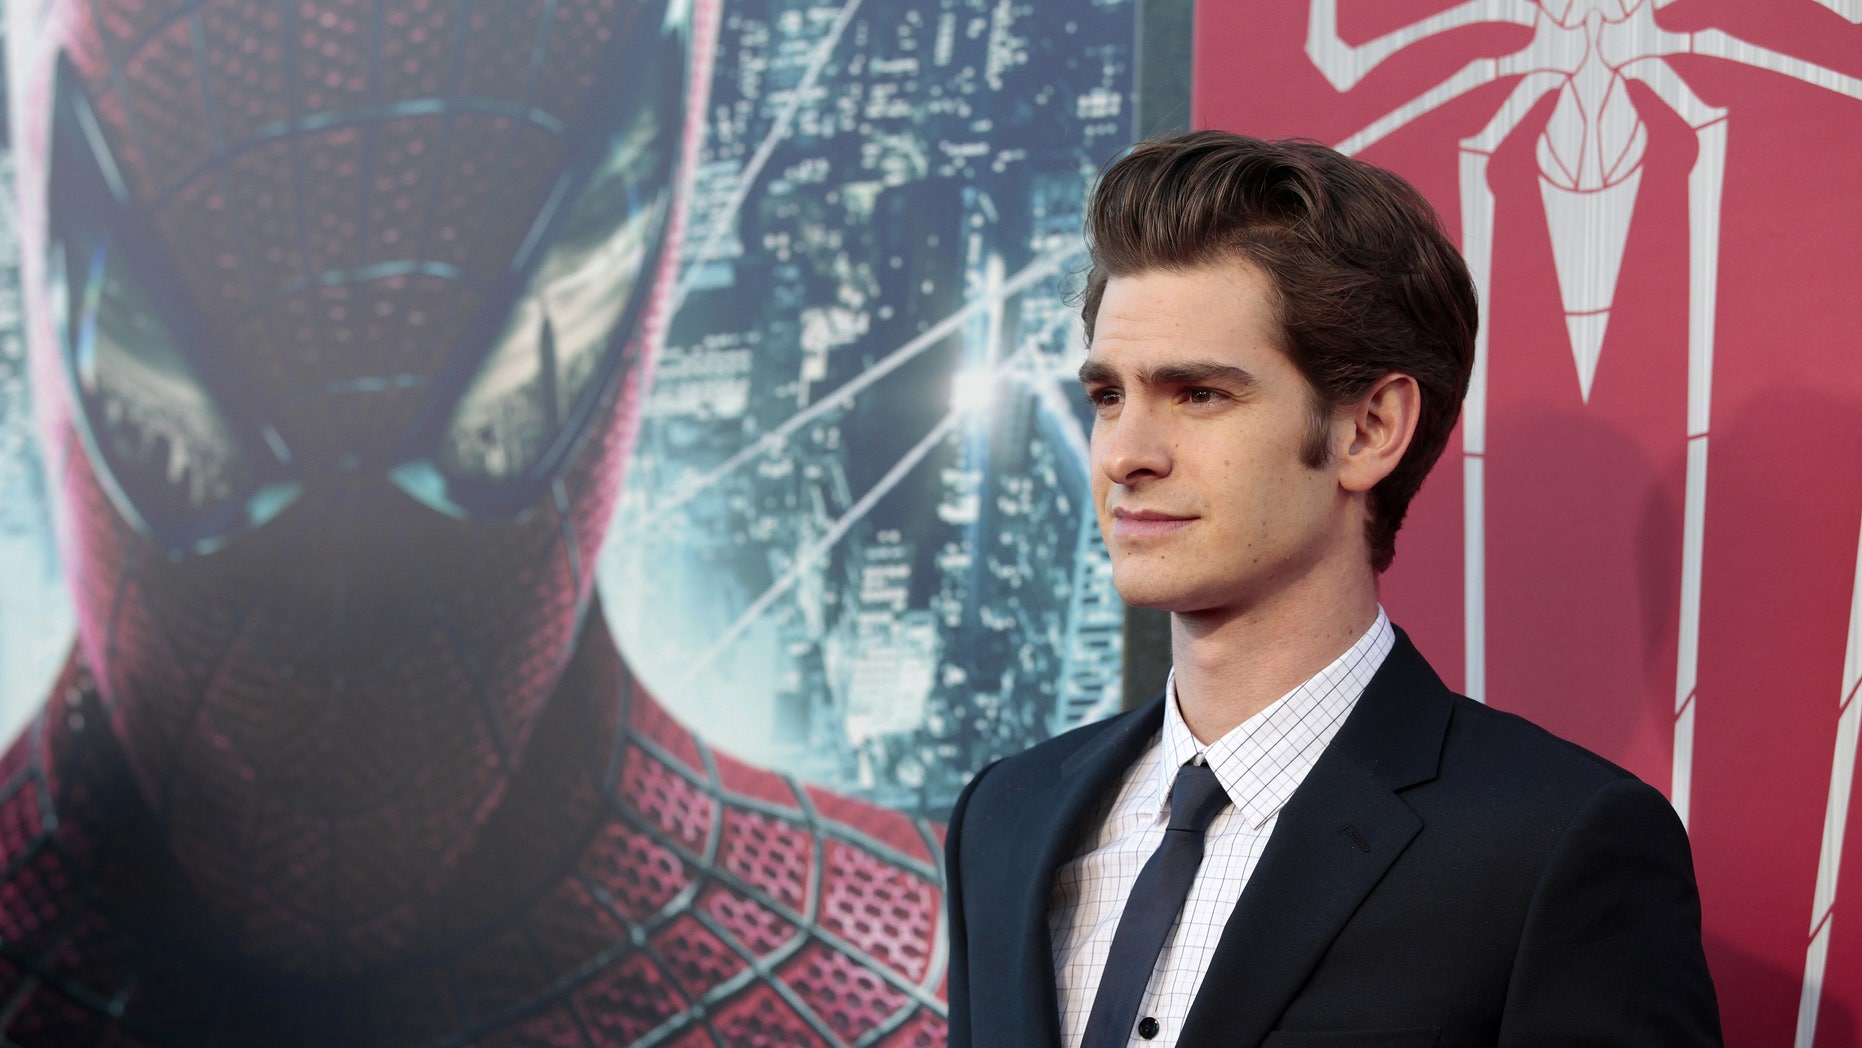 """July 3, 2012. Andrew Garfield poses at the premiere of """"The Amazing Spider-Man"""" at the Regency Village theatre in Los Angeles, California."""